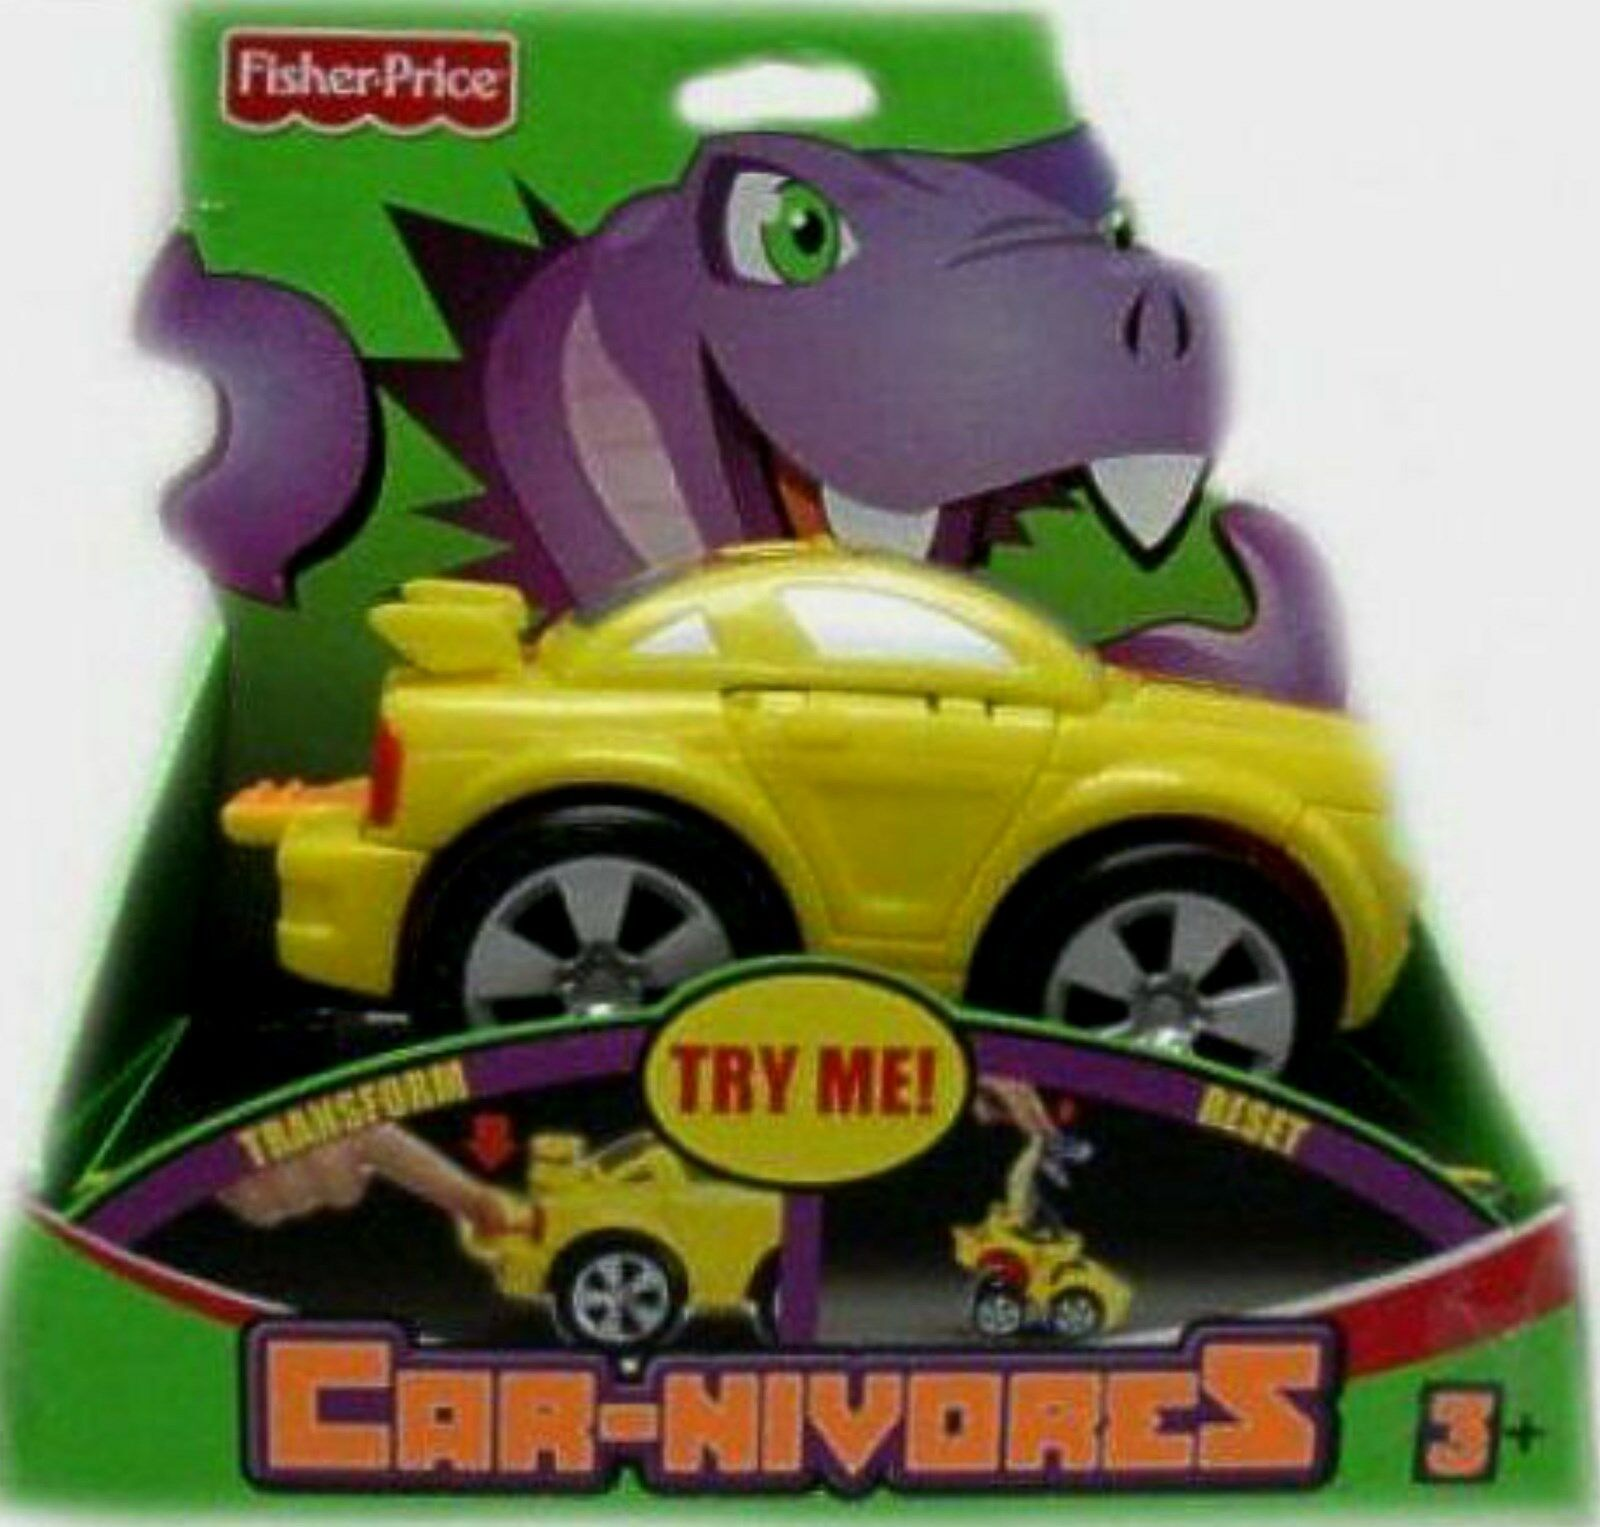 Car-nivores Corbra Transforning Car Fisher-price New Factory Sealed